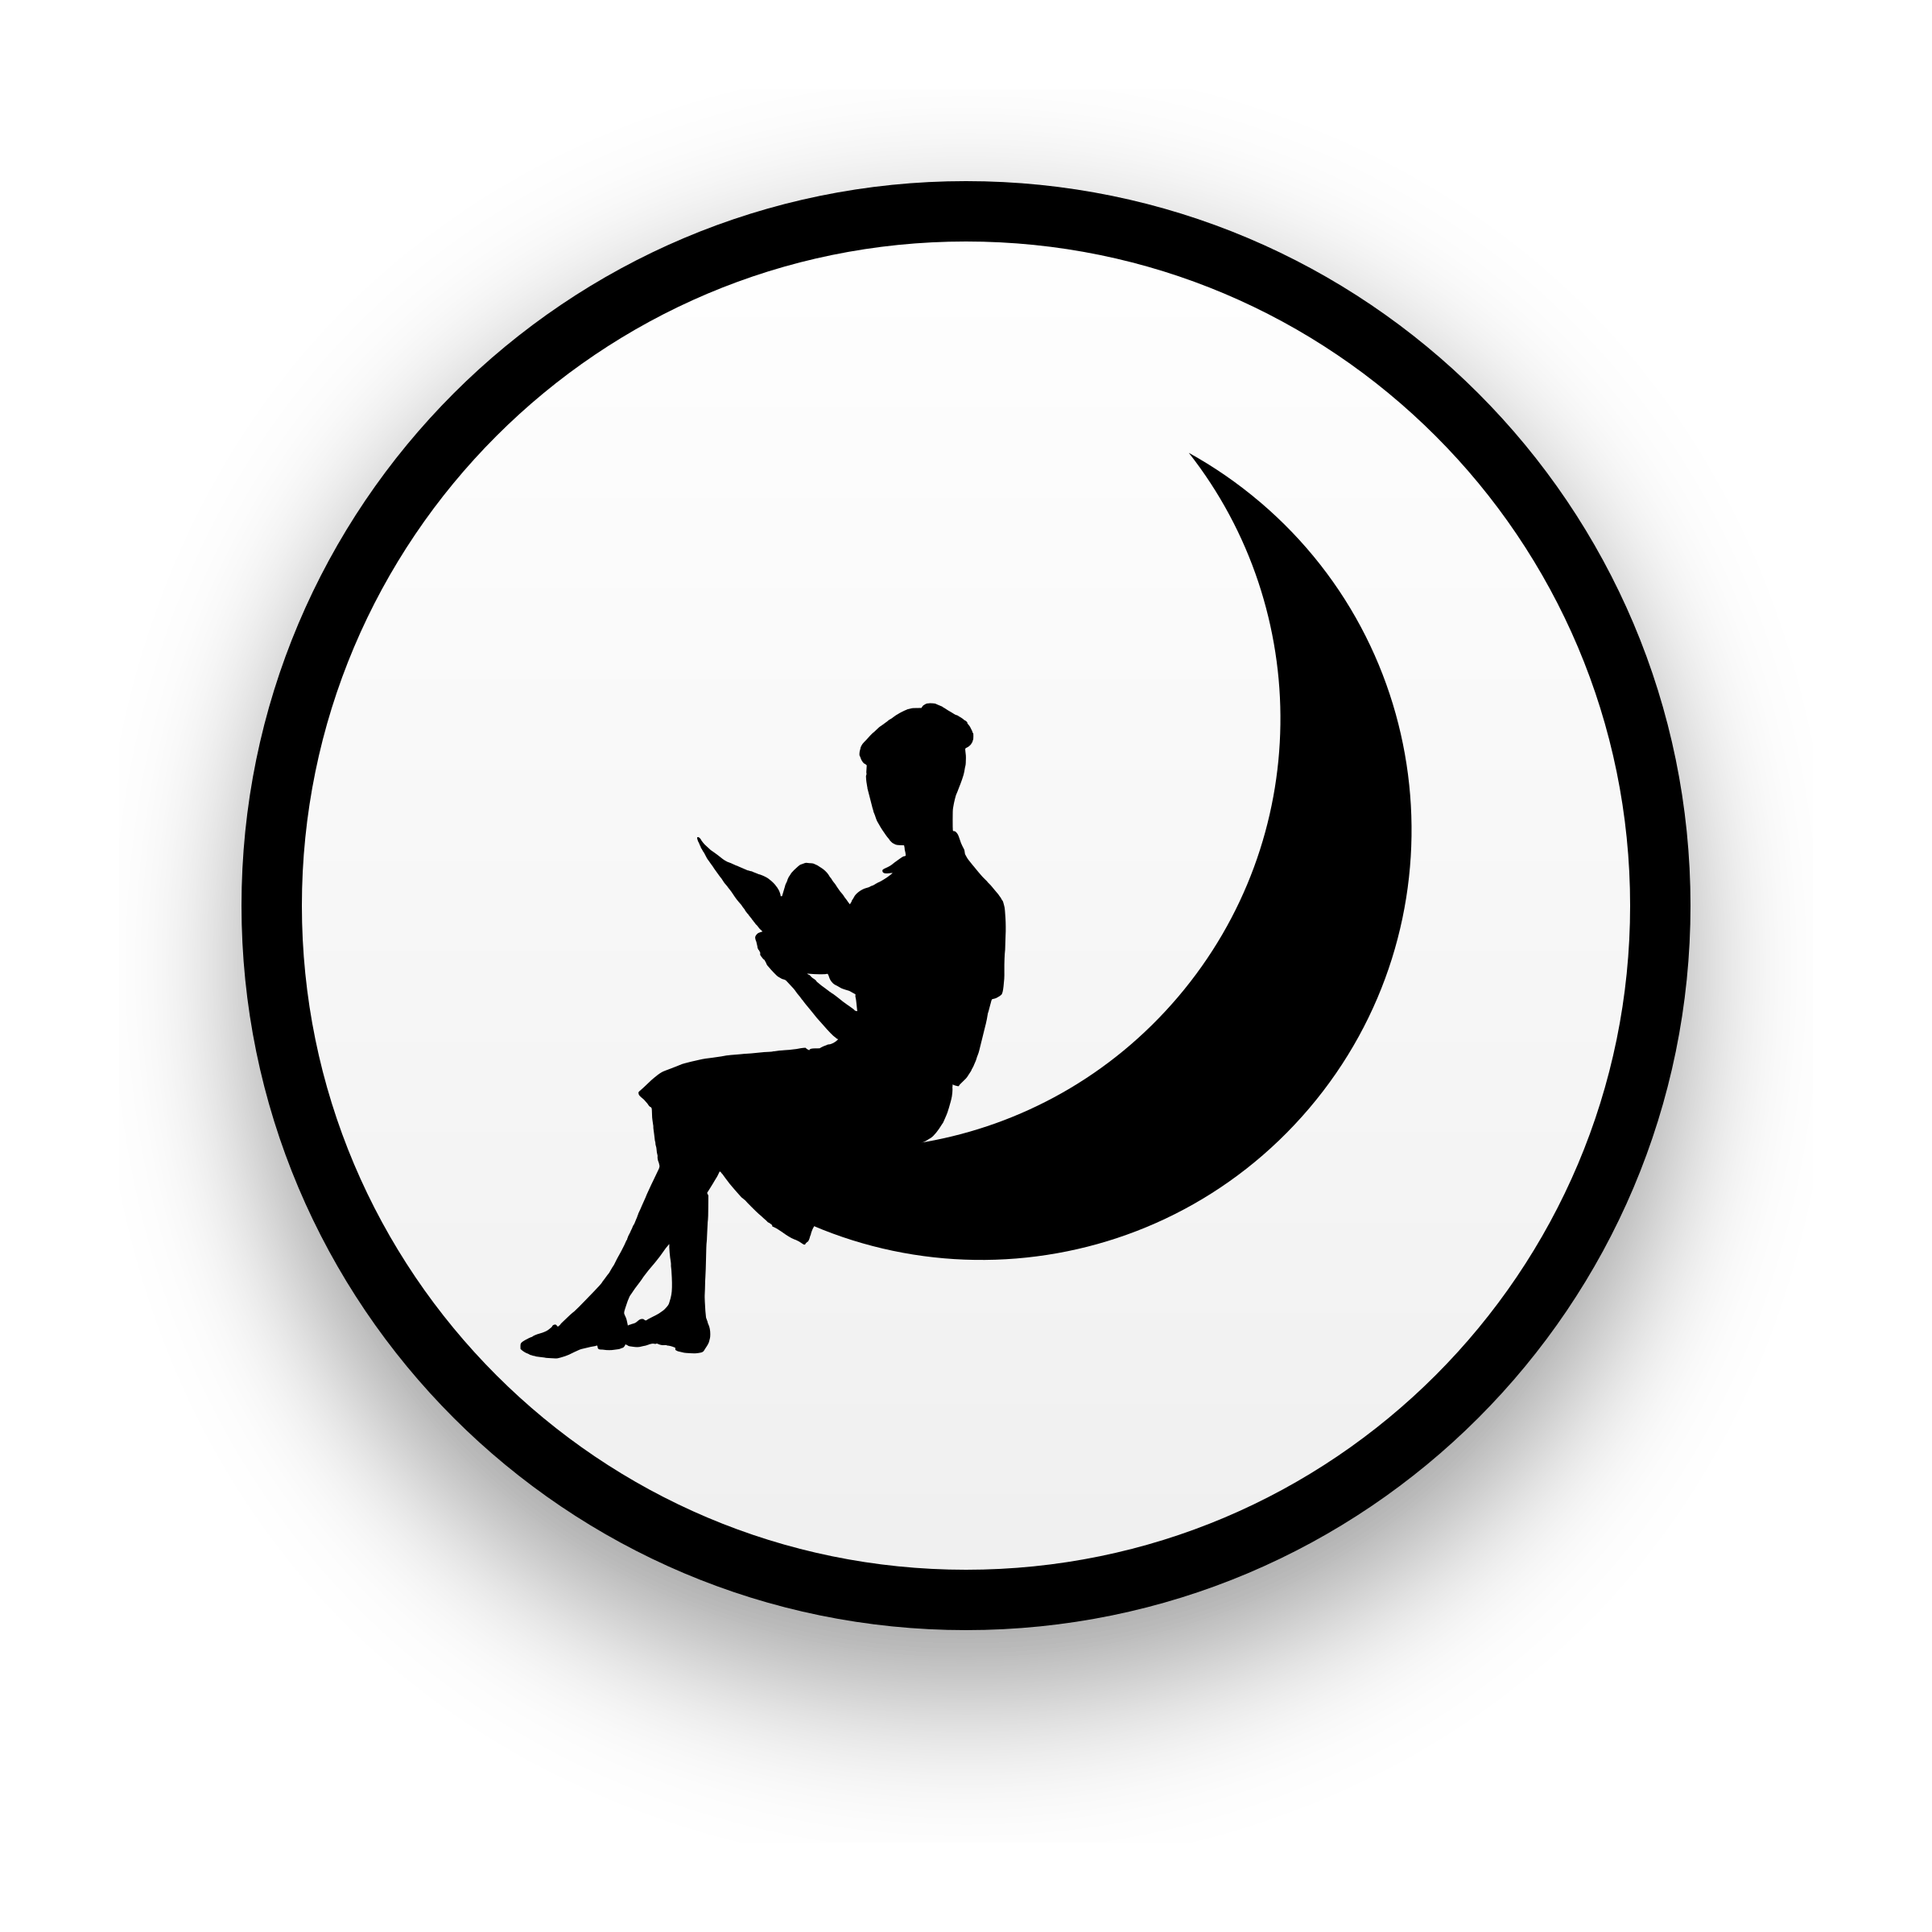 Silhouette at getdrawings com. Clipart moon black and white